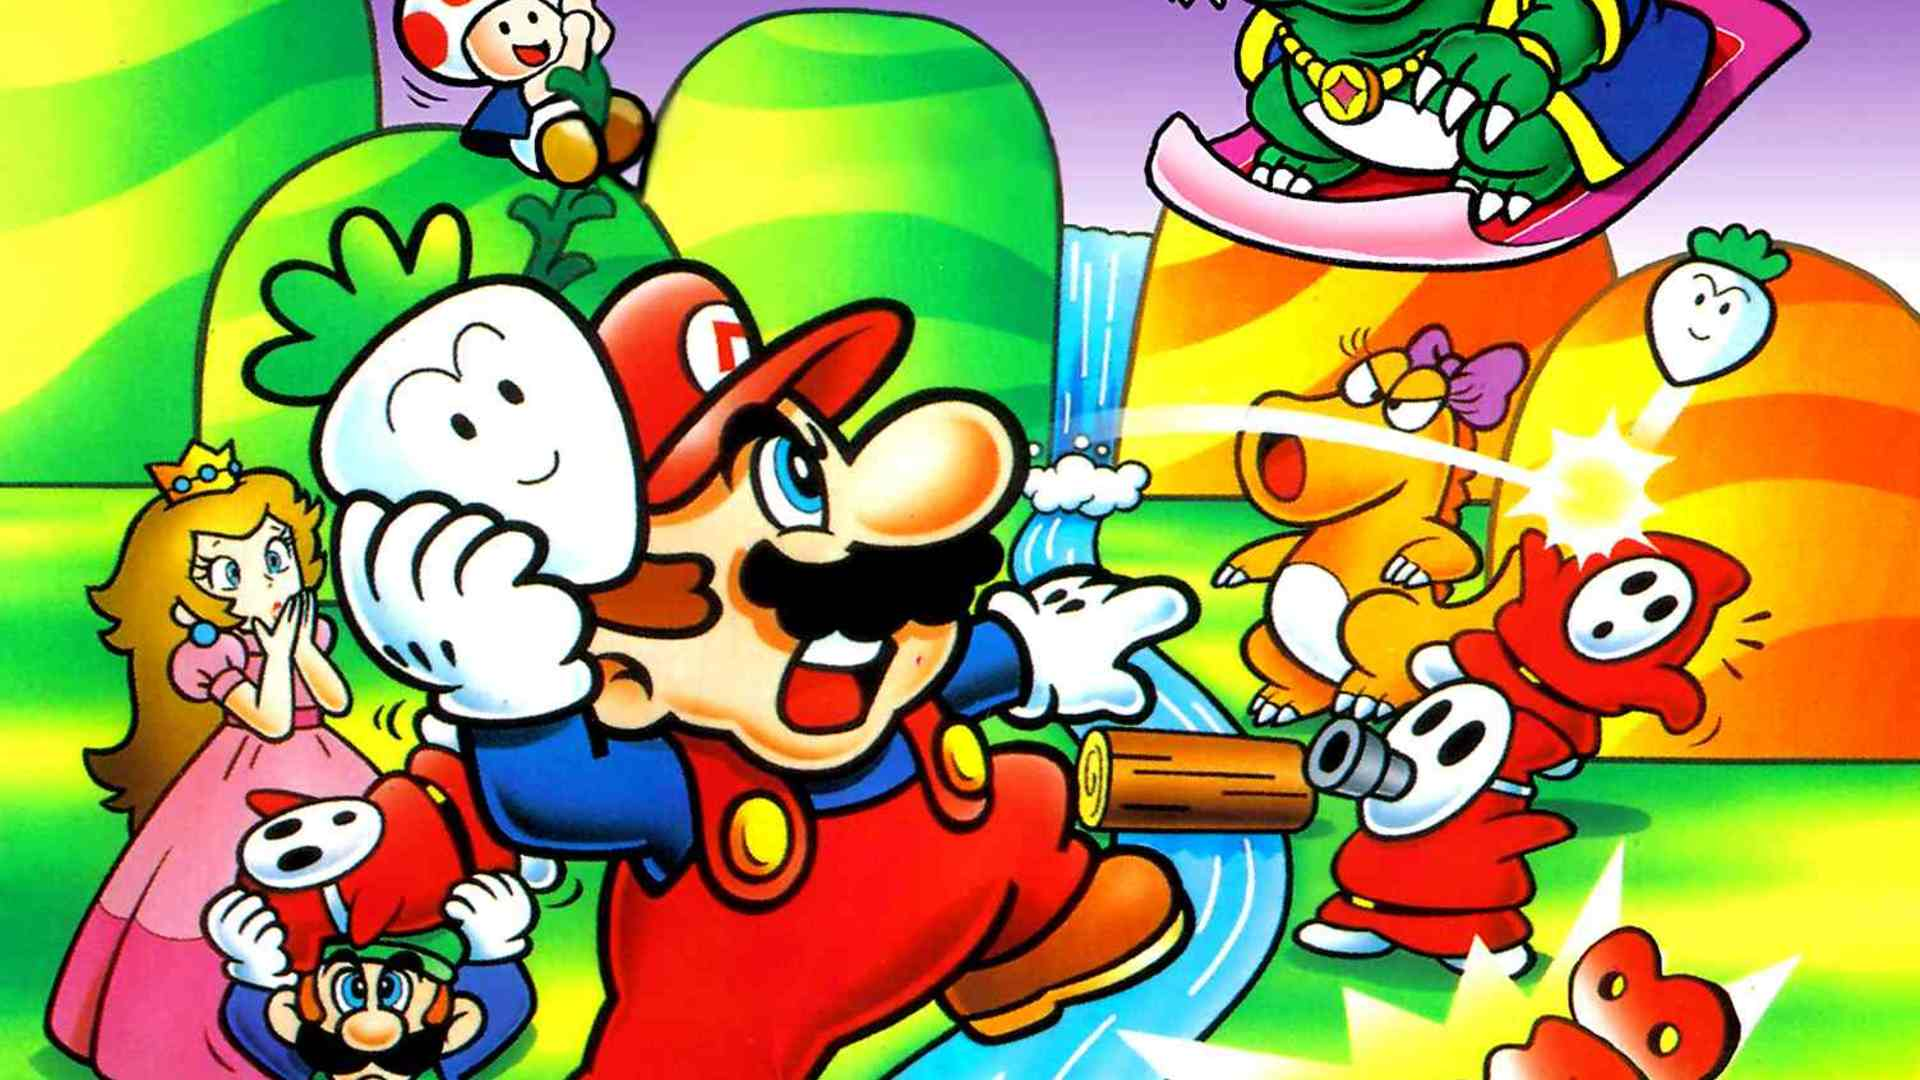 Game Completion 2020 #60 – Super Mario Bros. 2 (All-Stars version)